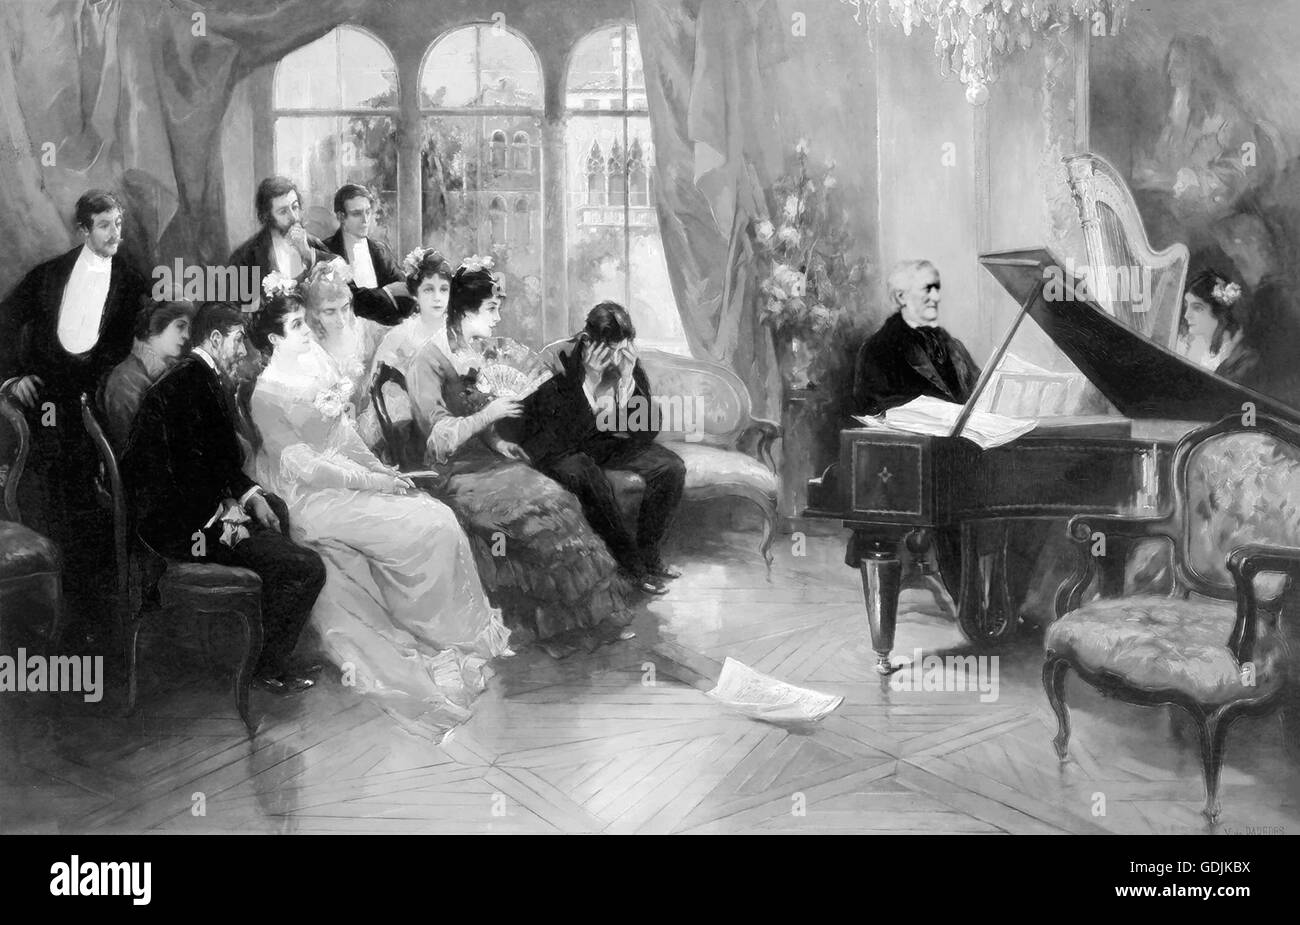 Richard Wagner. The German composer, Wilhelm Richard Wagner (1813-1883), playing the piano to a private audience. - Stock Image